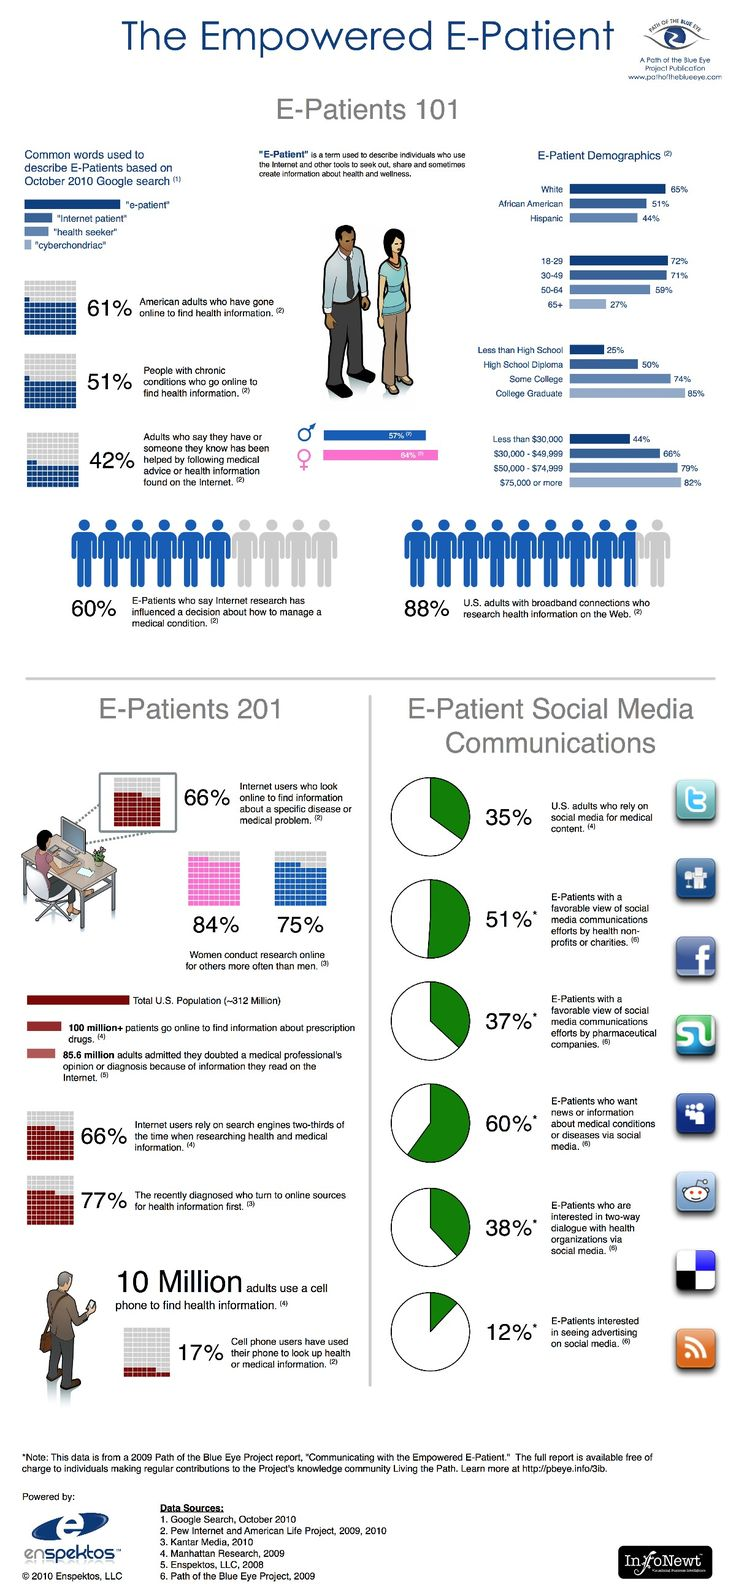 The empowered e-patient (infographic)